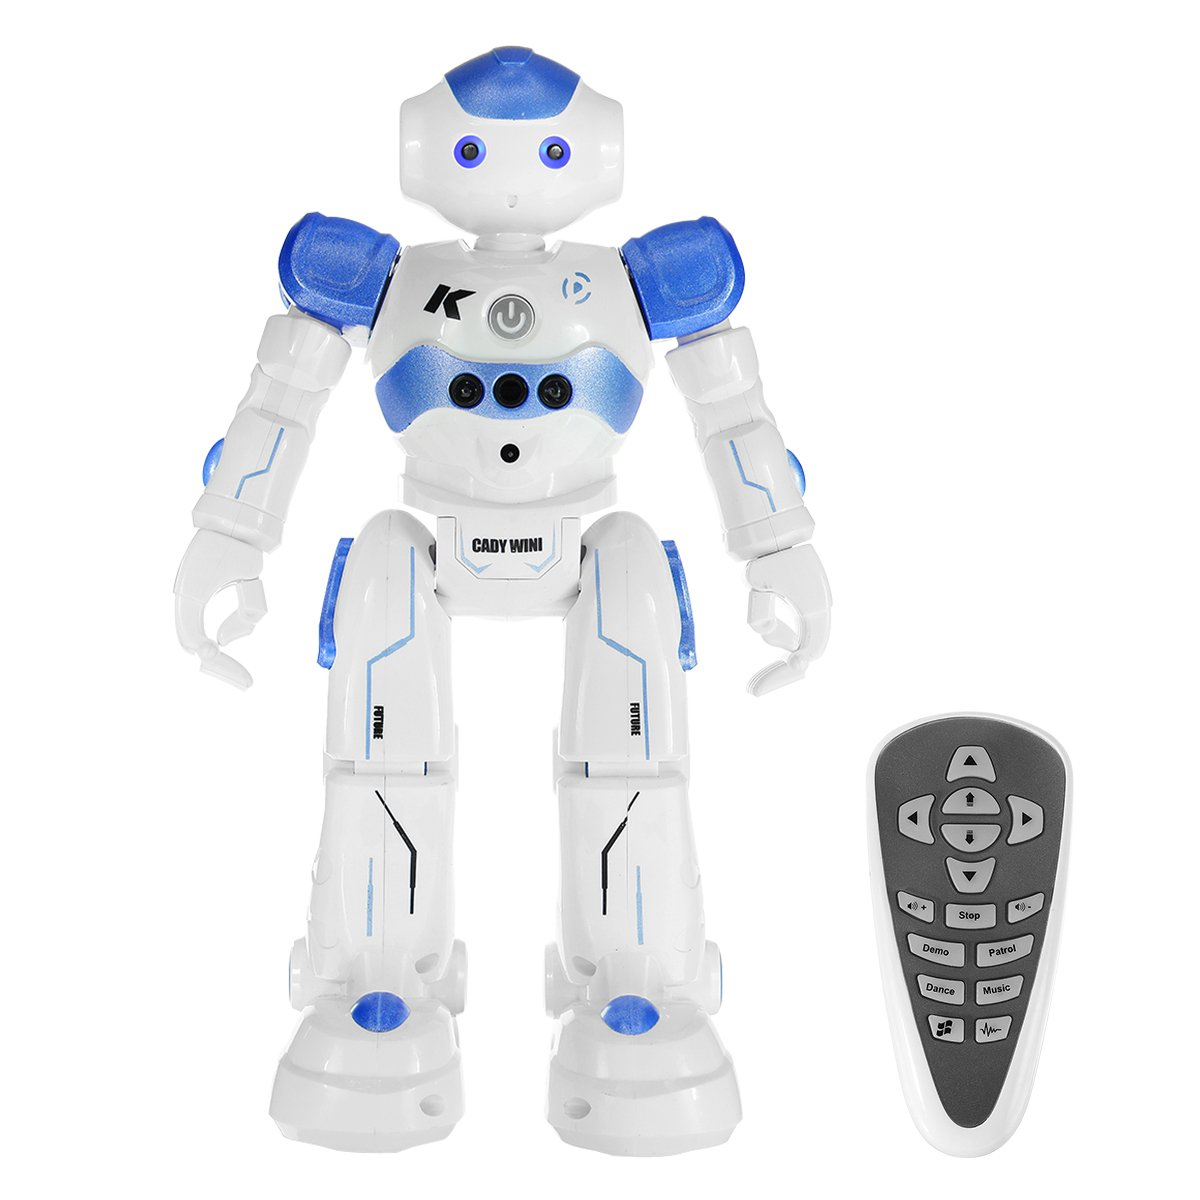 RC Robot for kids,REALACC USB Charging Dancing Gesture Control Robot Toy (Blue)